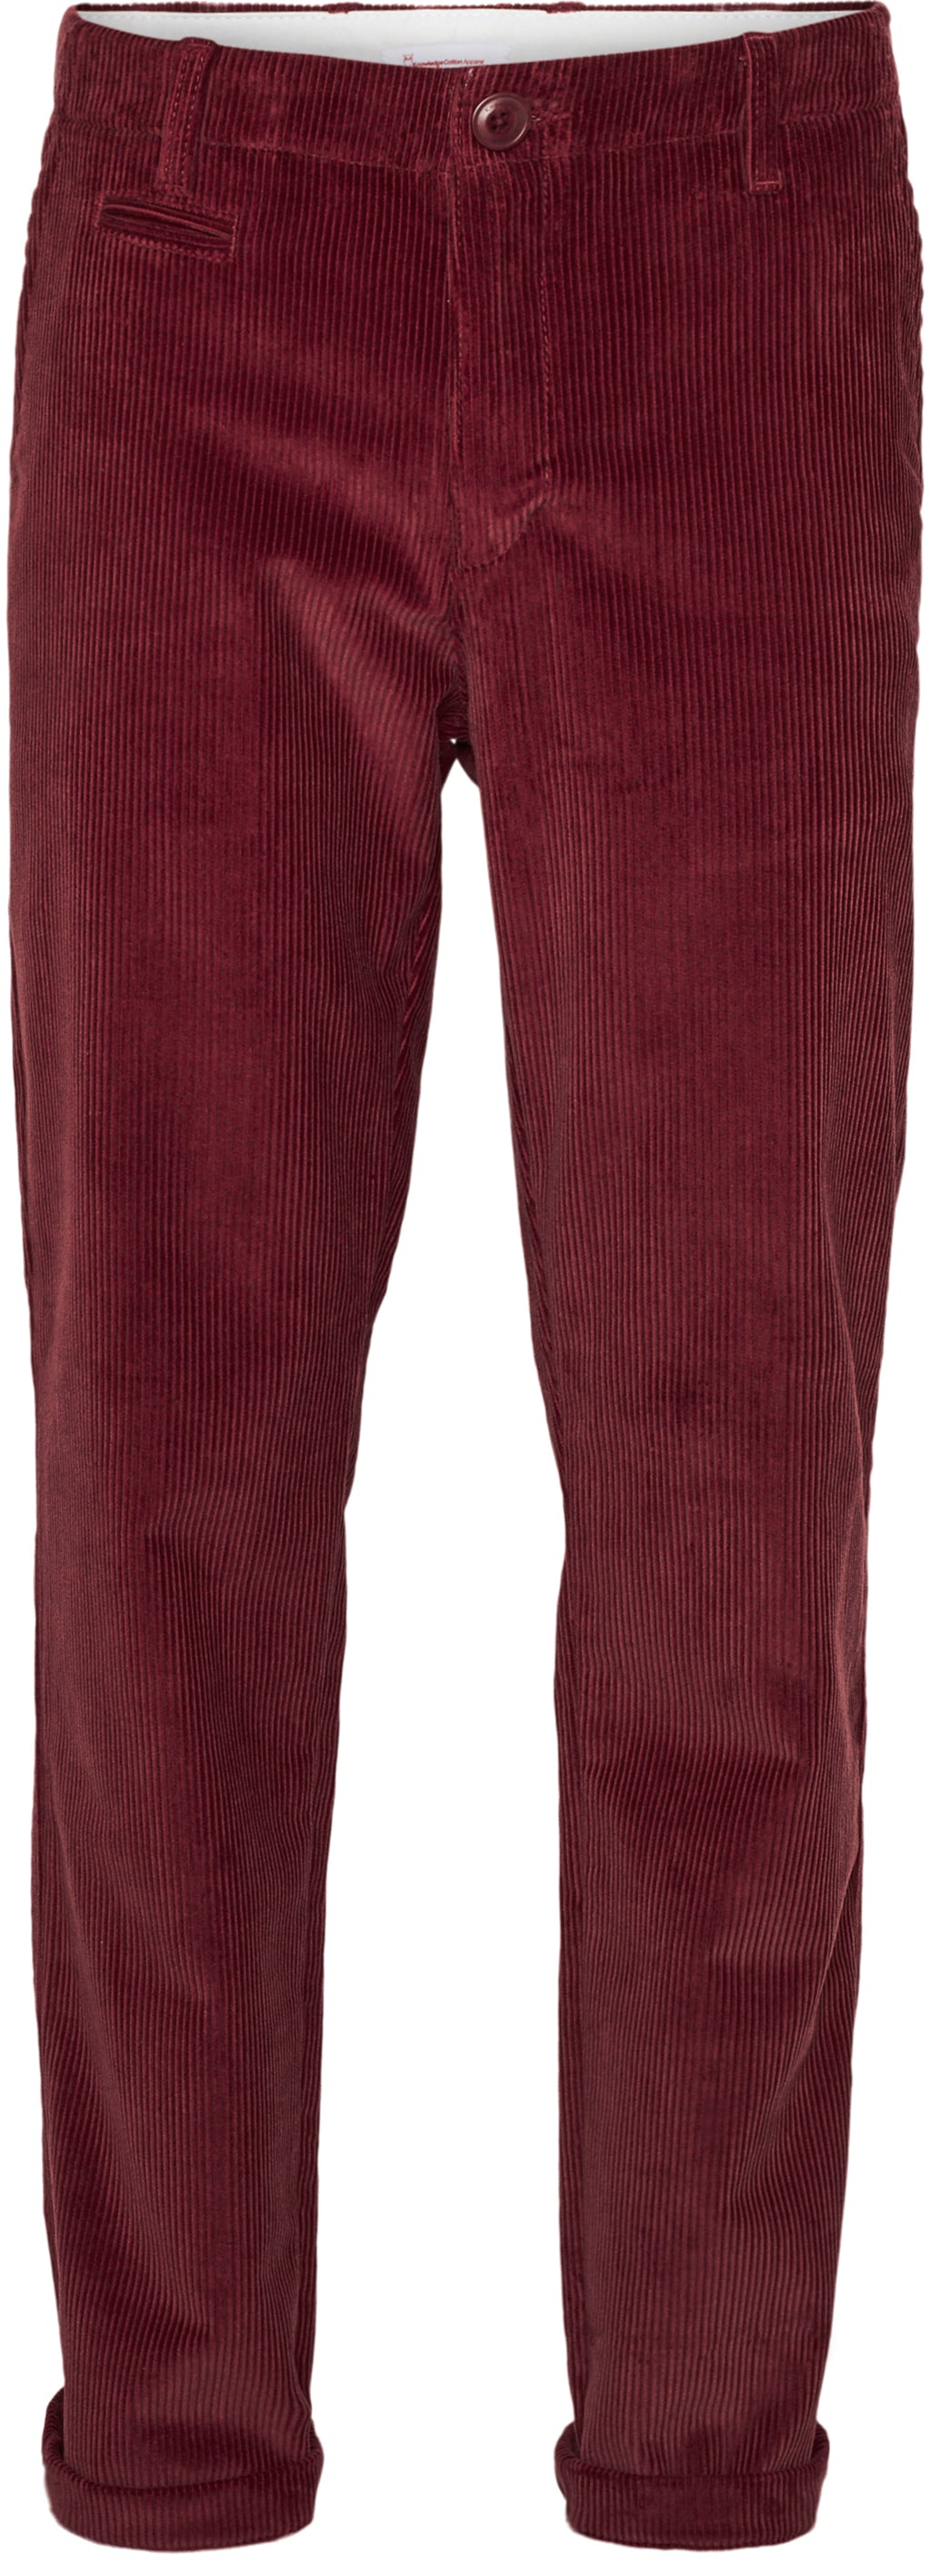 Chuck 8 Wales Corduroy Chinos Cord